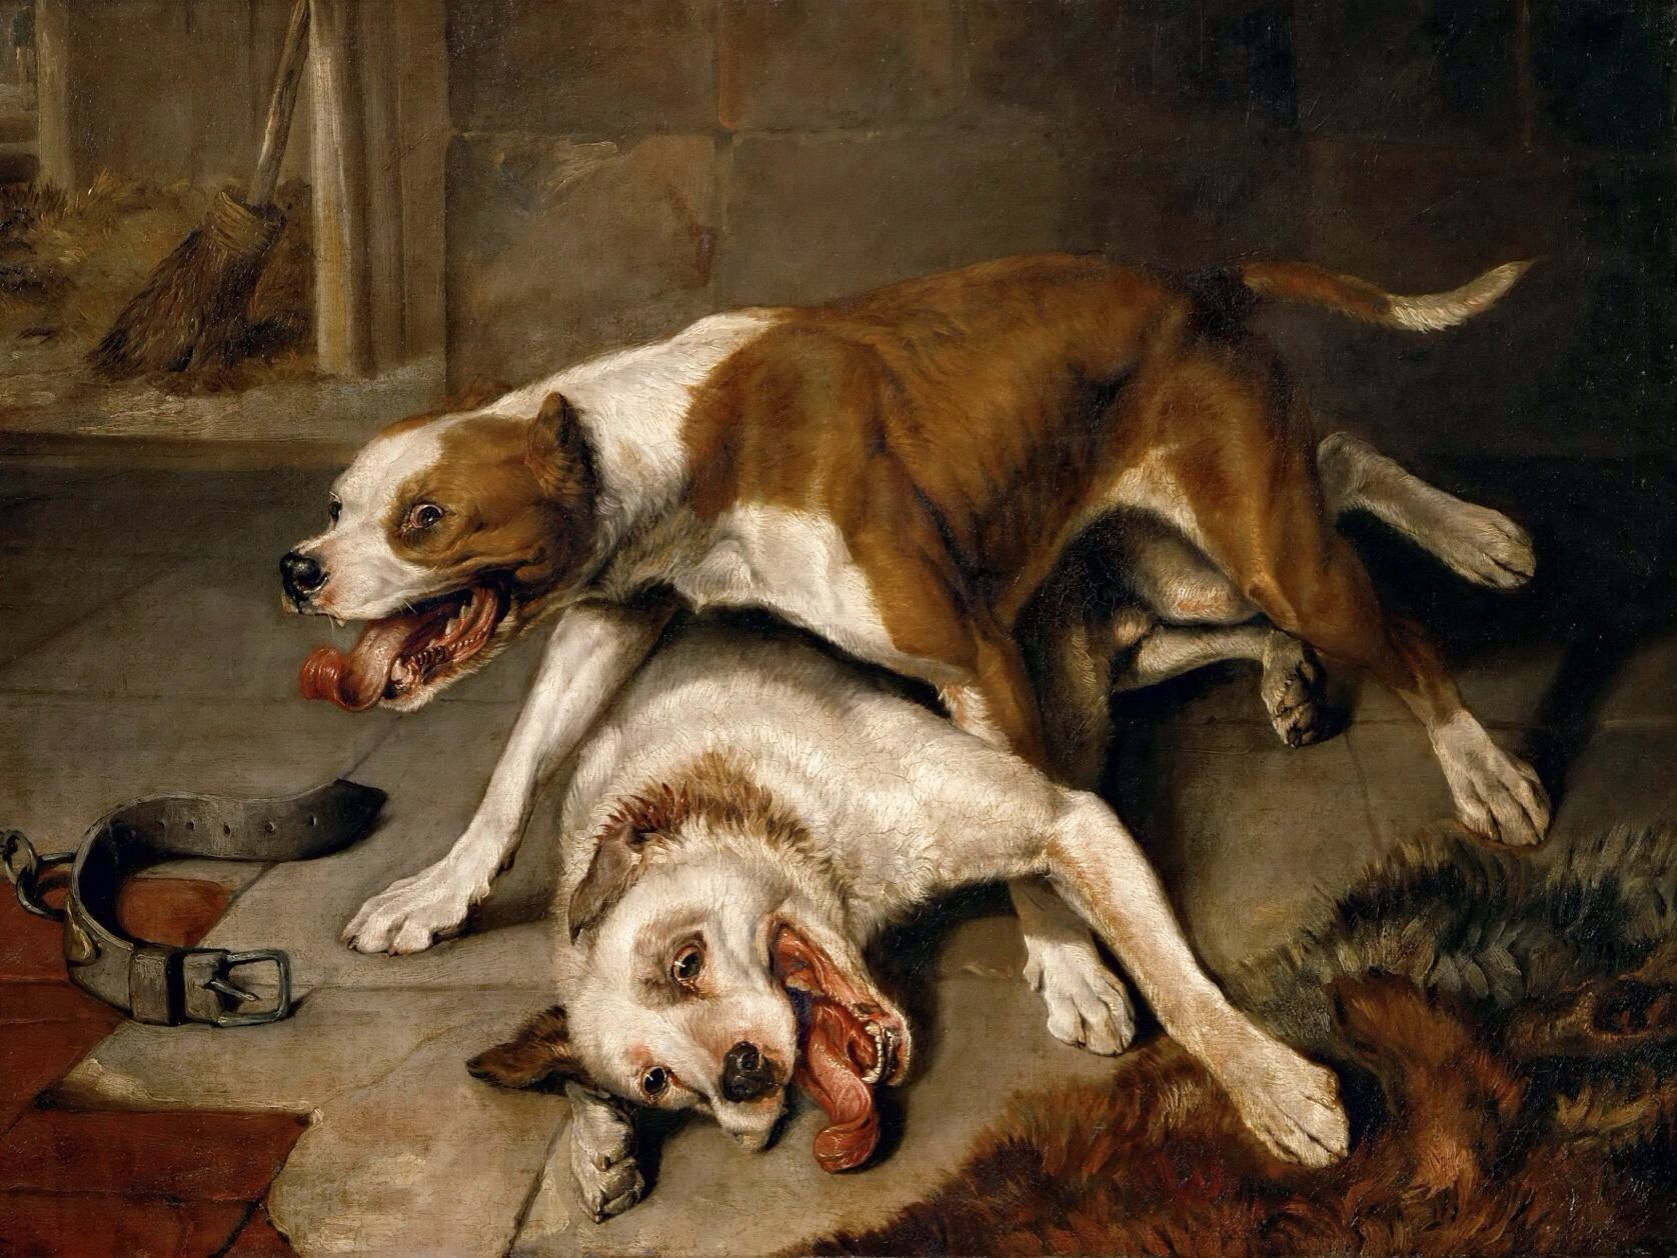 Fighting_dogs_catching_their_breath_-_painting.jpg